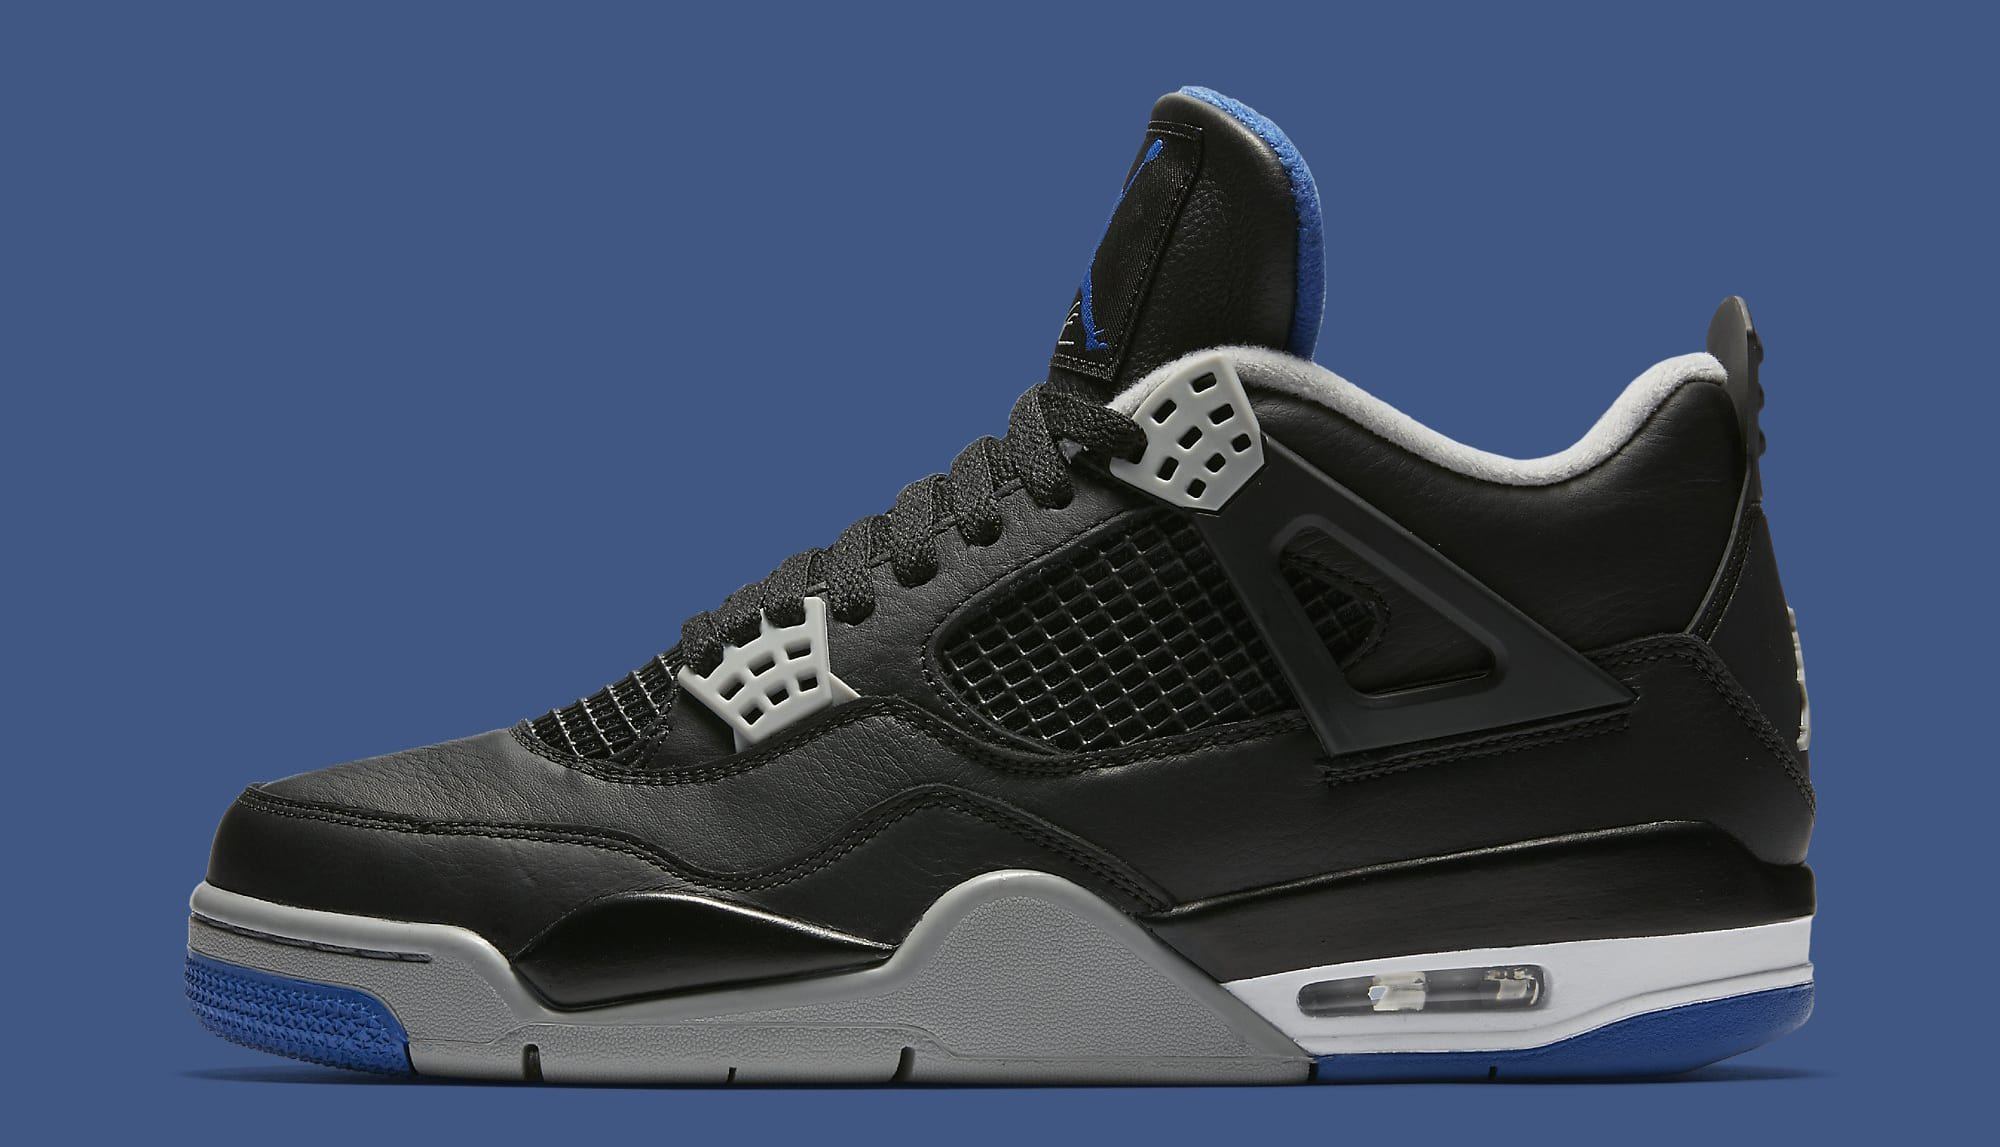 Jordan shoes release date in Australia